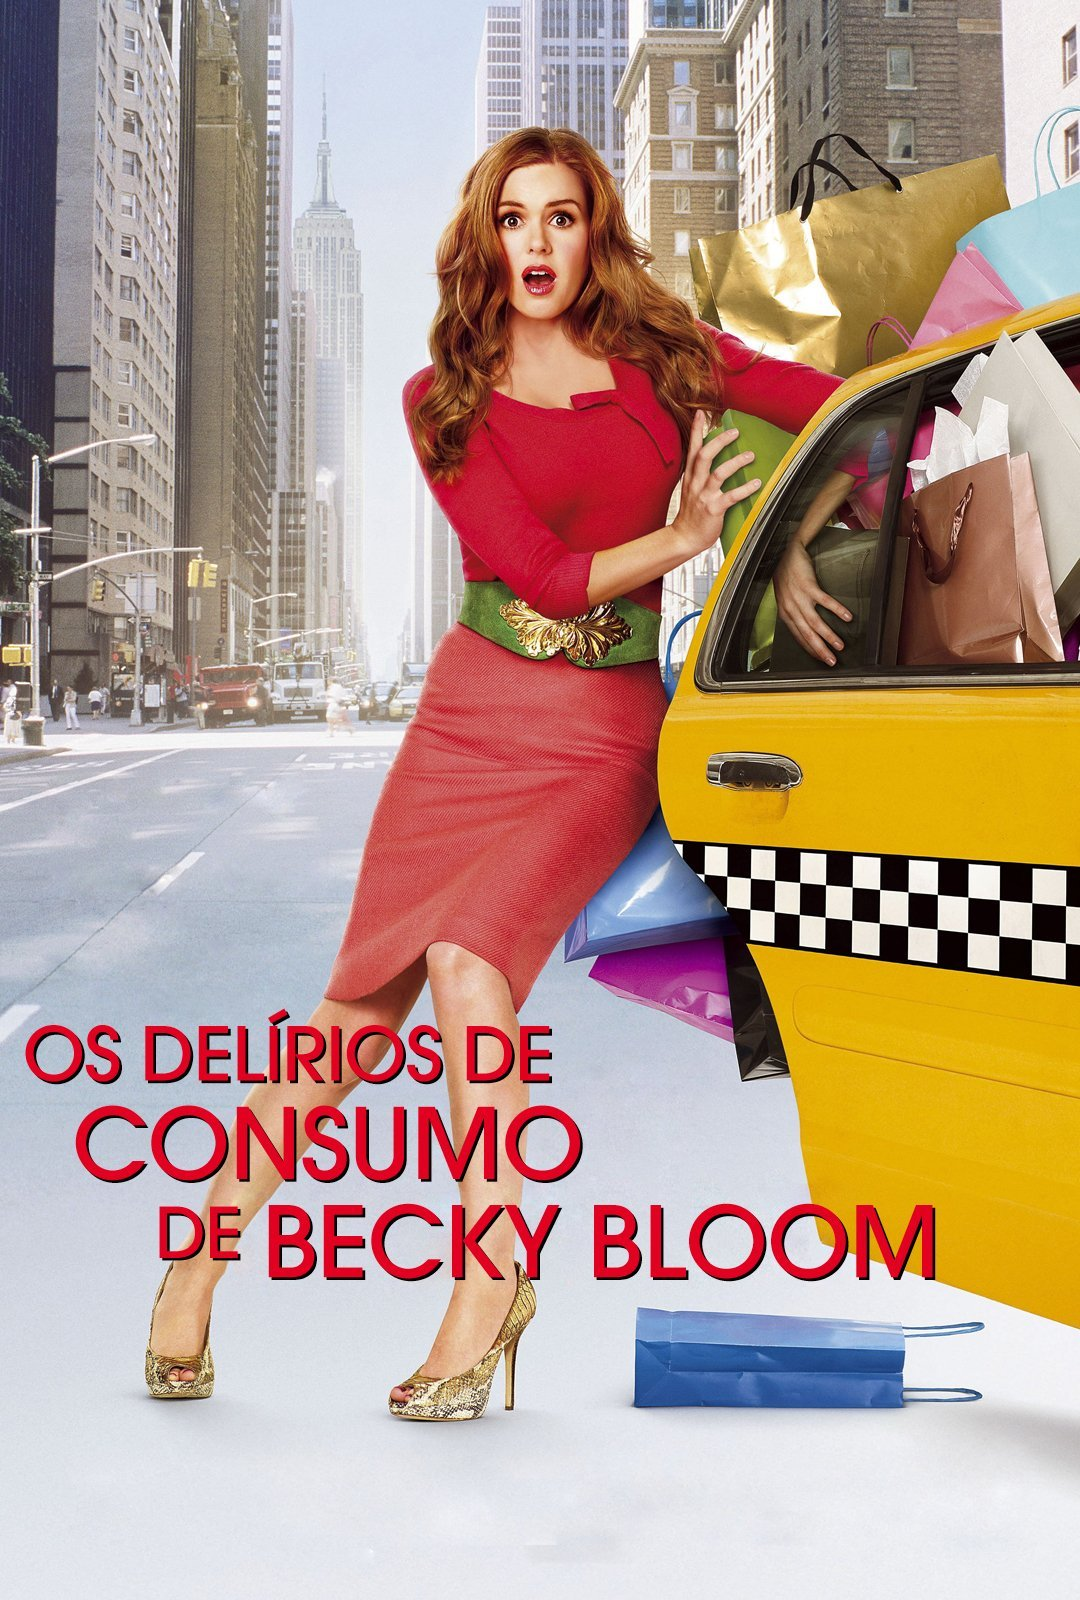 It girls - Becky Bloom - Séries e filmes - Inverno - Street Style - https://stealthelook.com.br